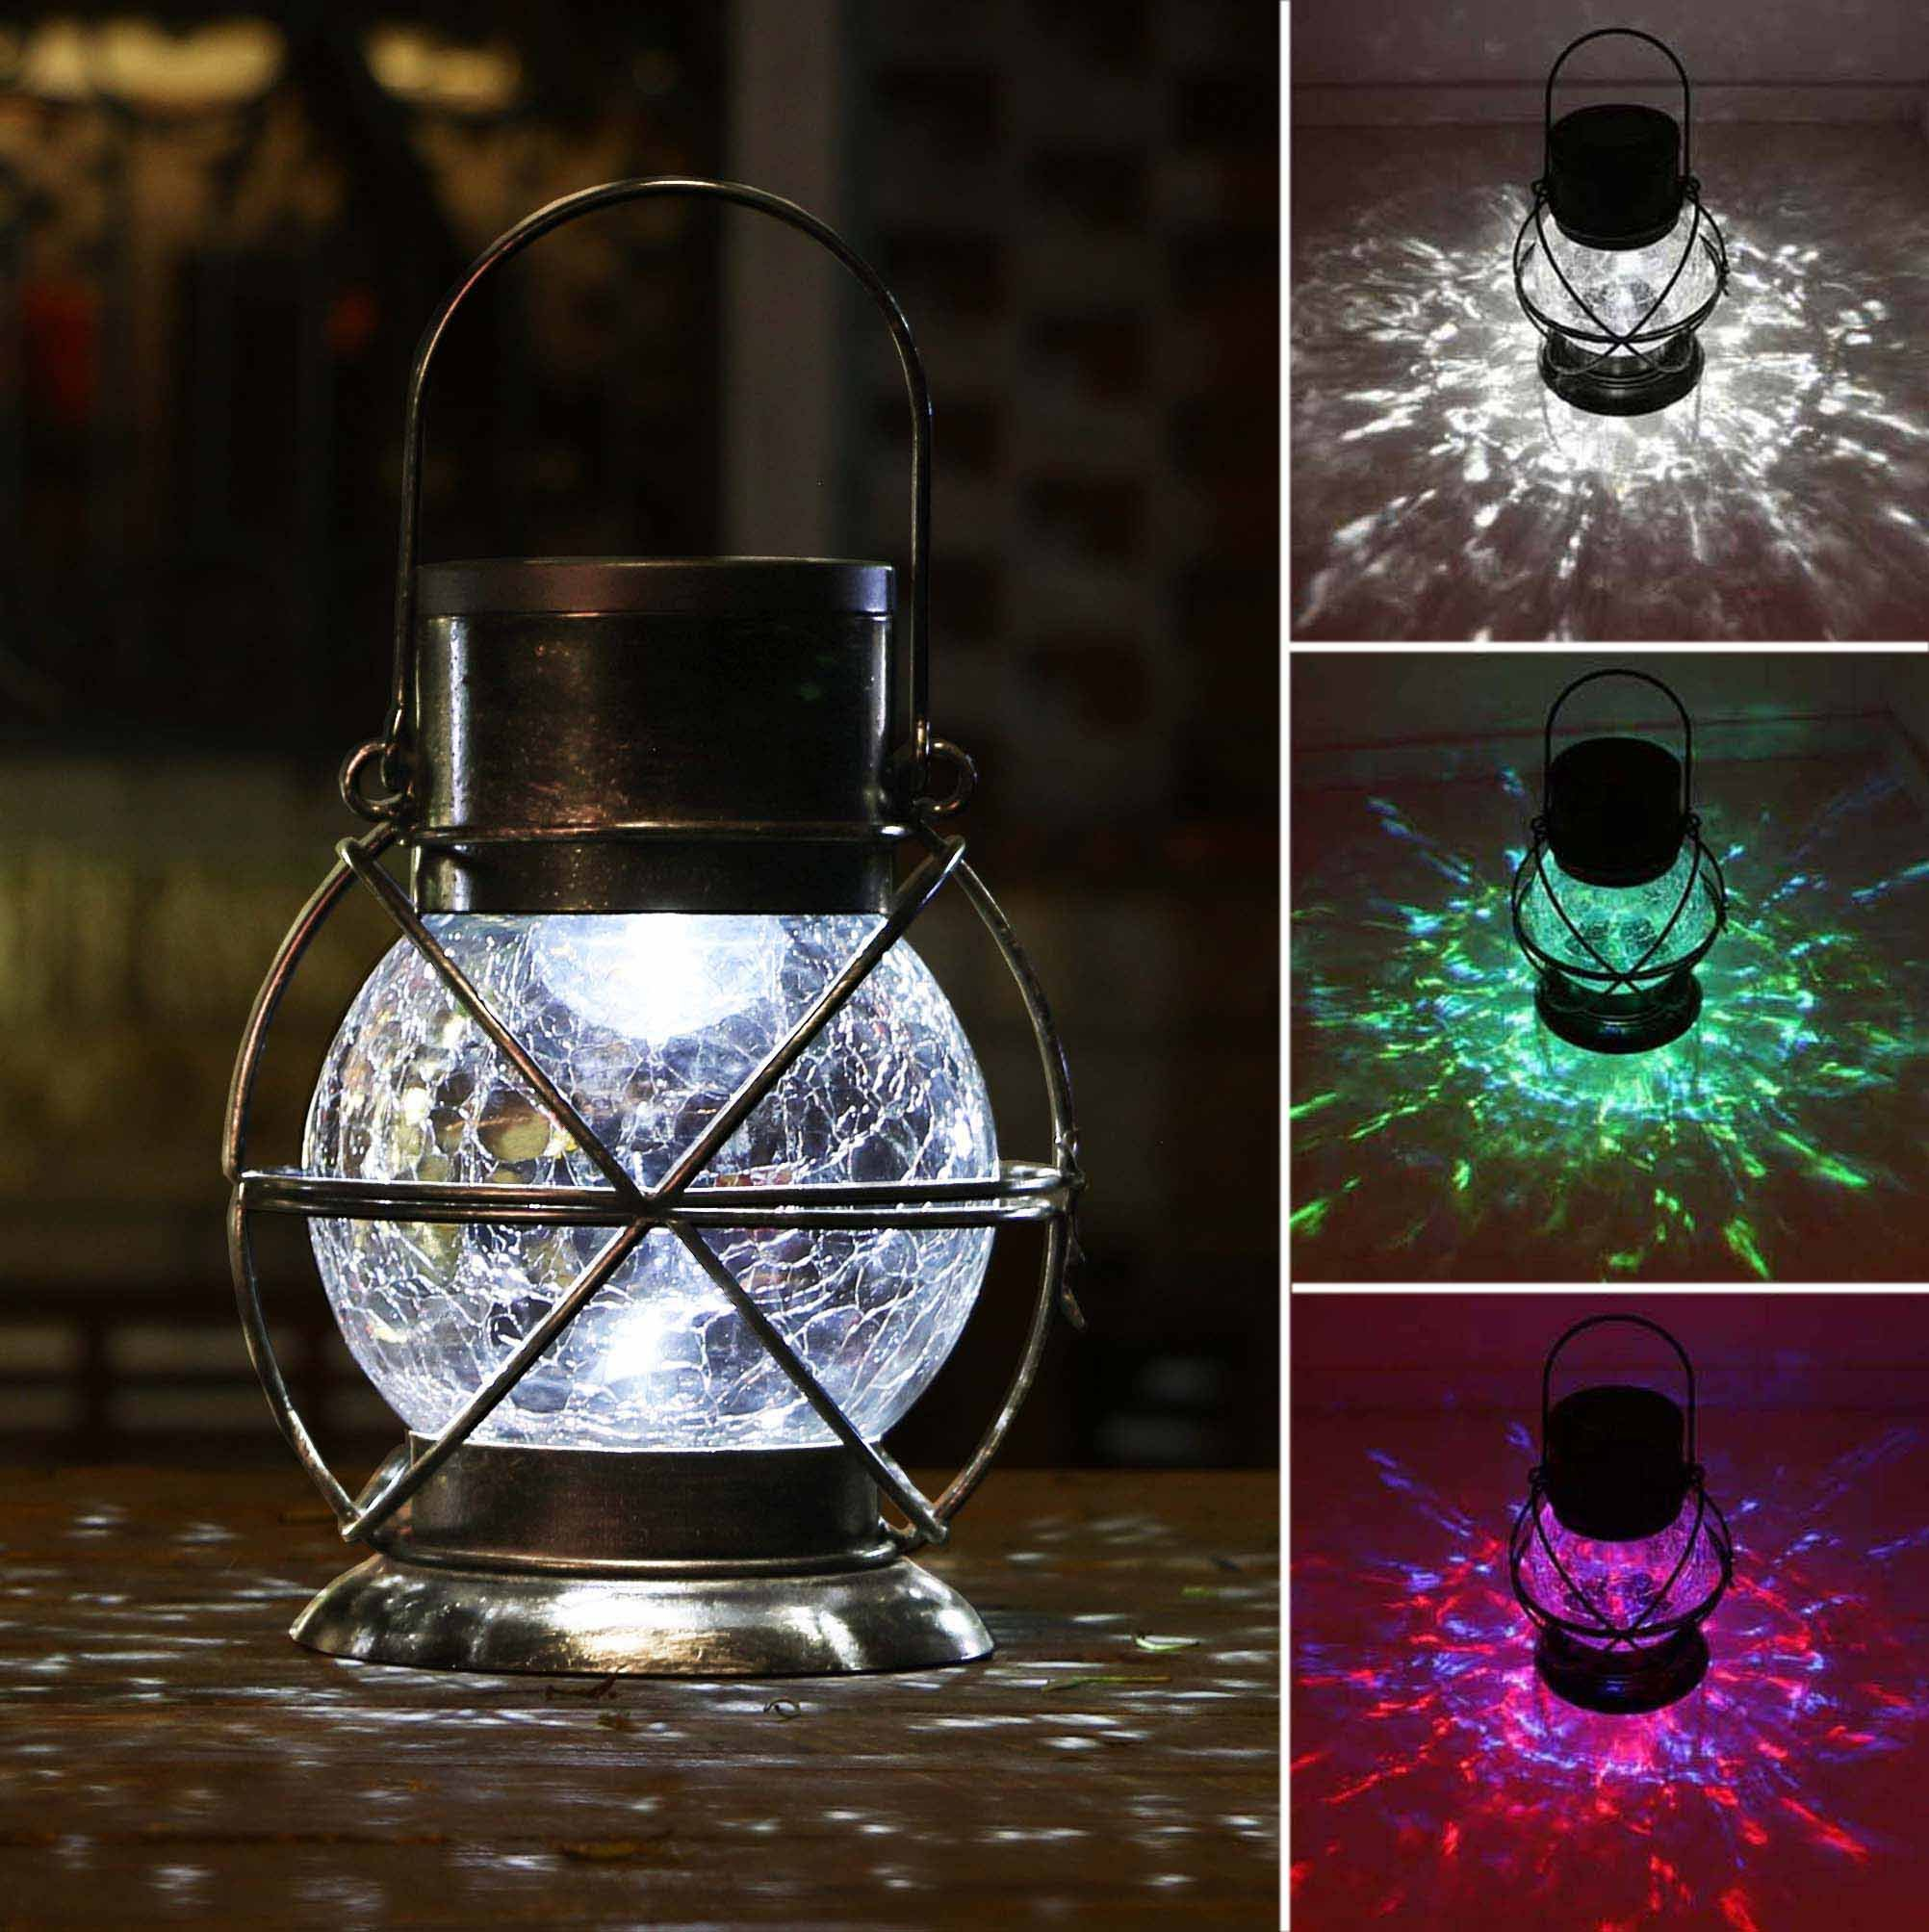 TAKE ME Solar Lantern, Metal & Glass Outdoor Garden Lights,Waterproof Decorative Lamp Color Changing Twinkling Crackle Lights by TAKE ME